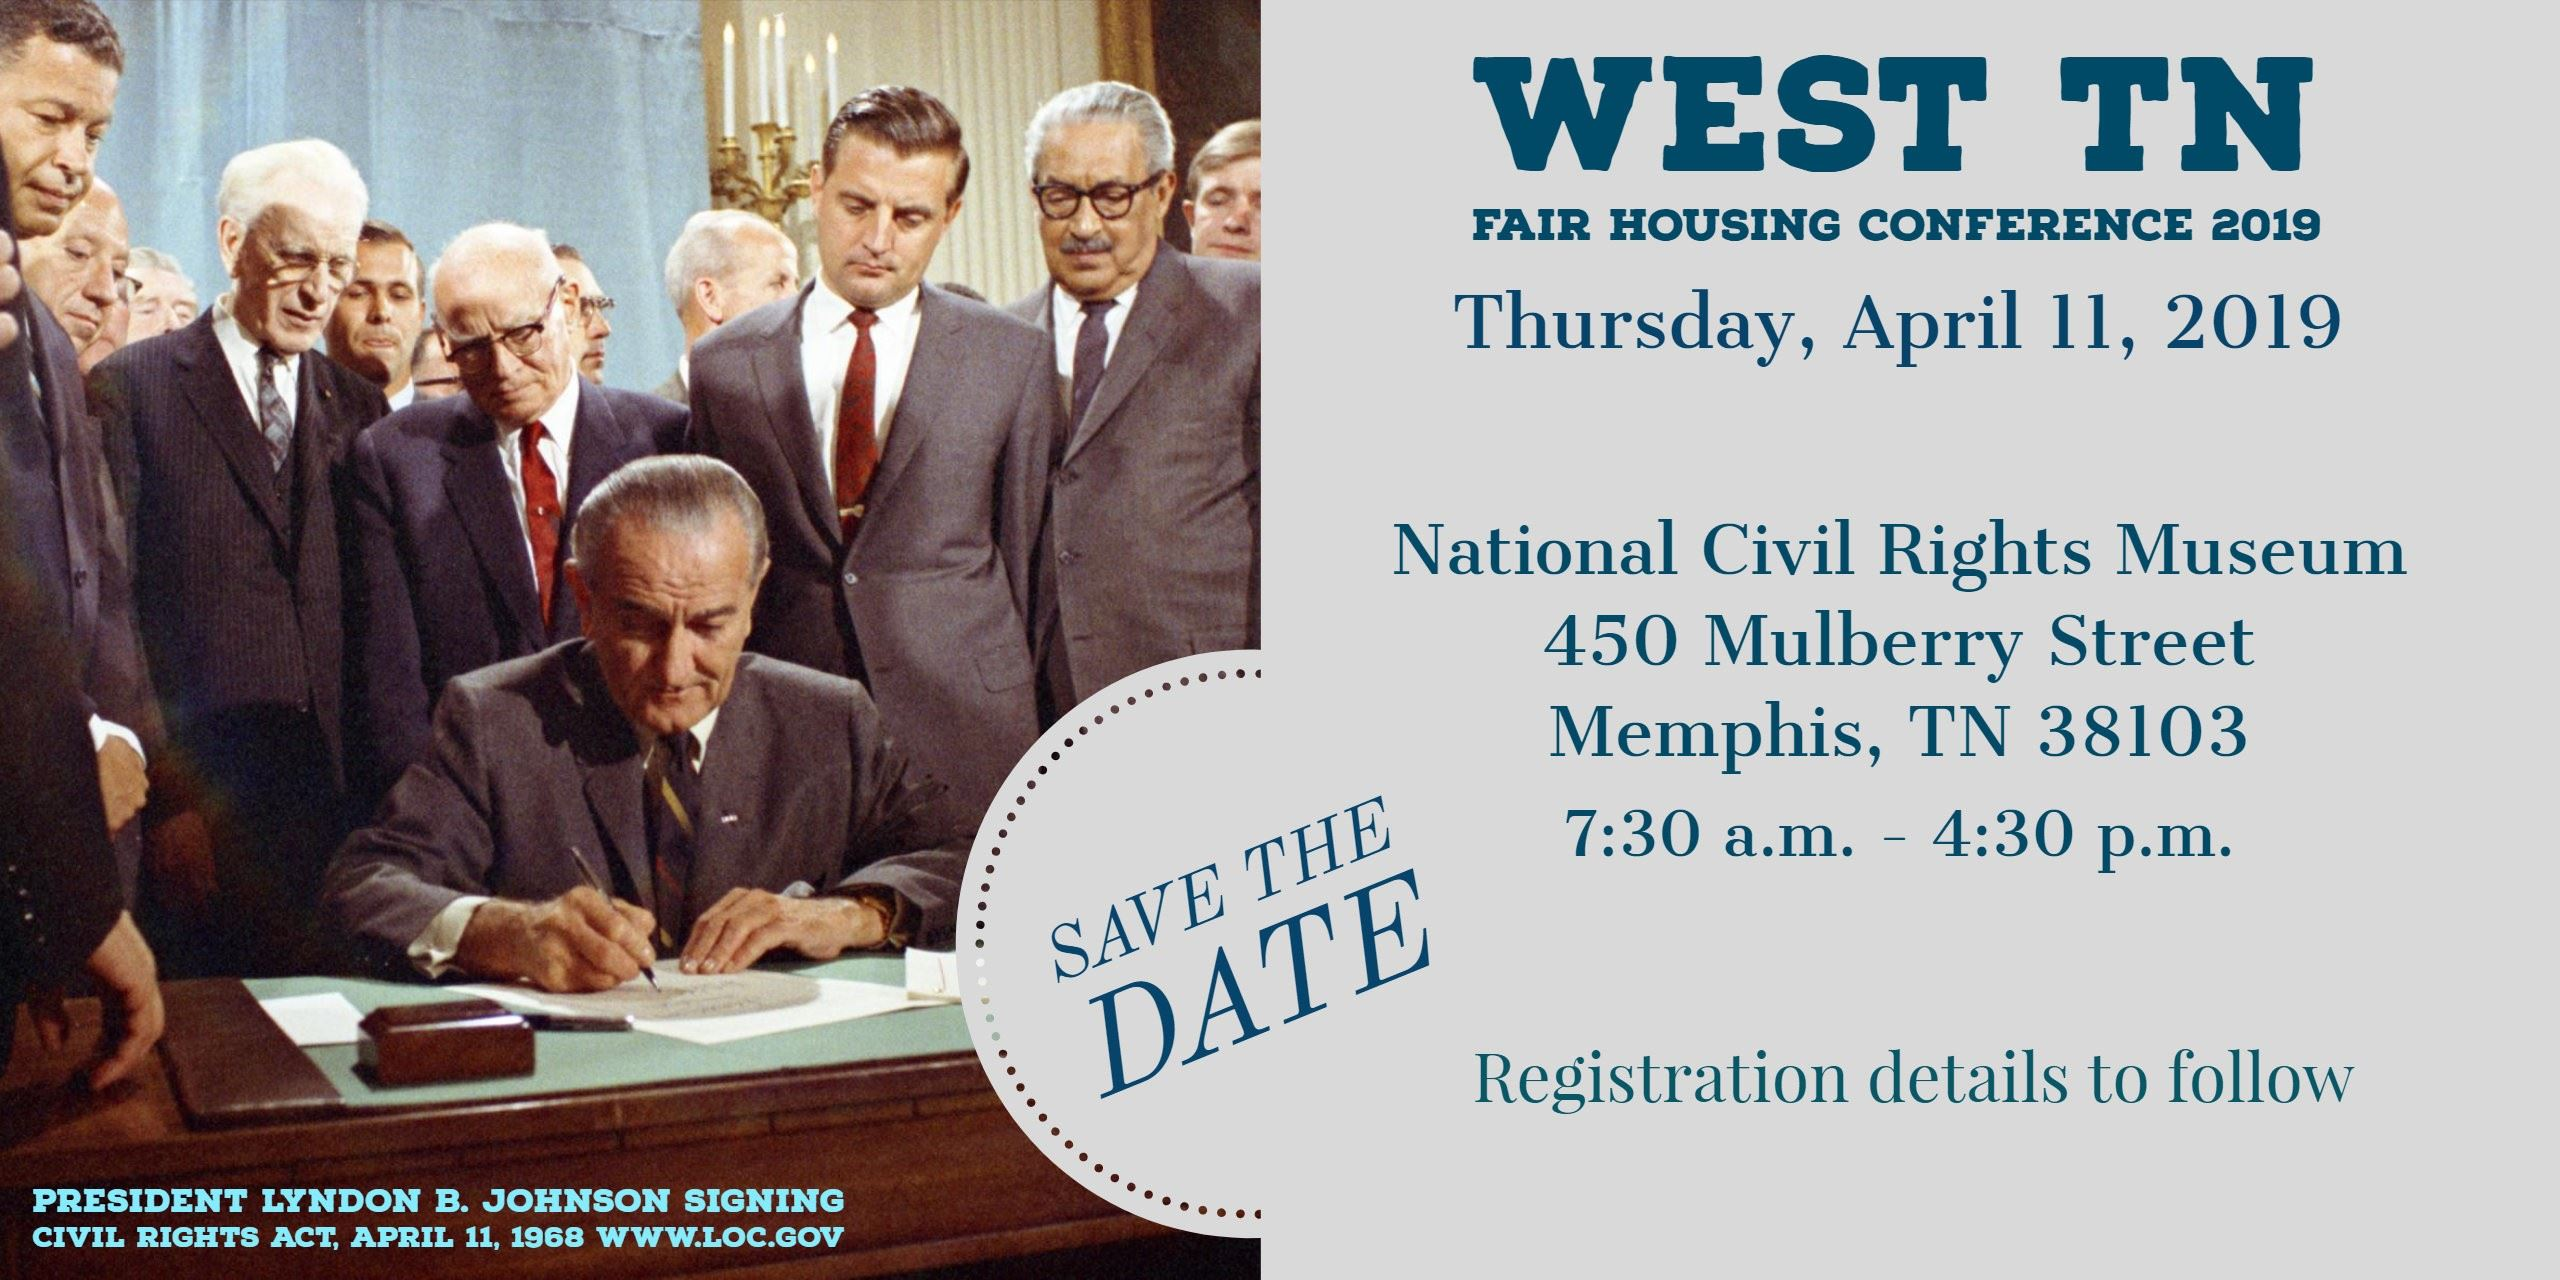 Fair Housing Conference